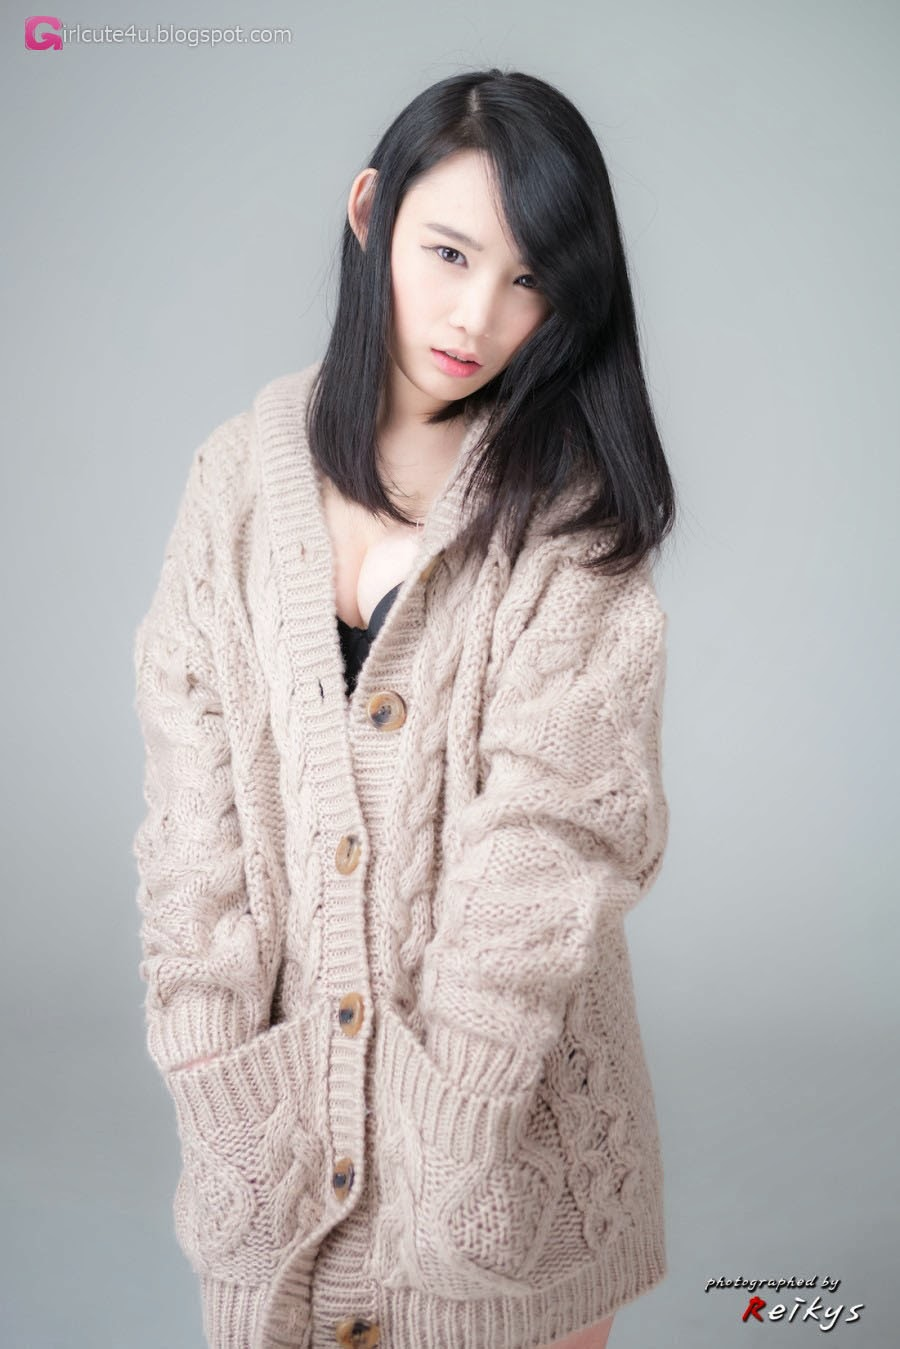 2 Na Ra - very cute asian girl-girlcute4u.blogspot.com